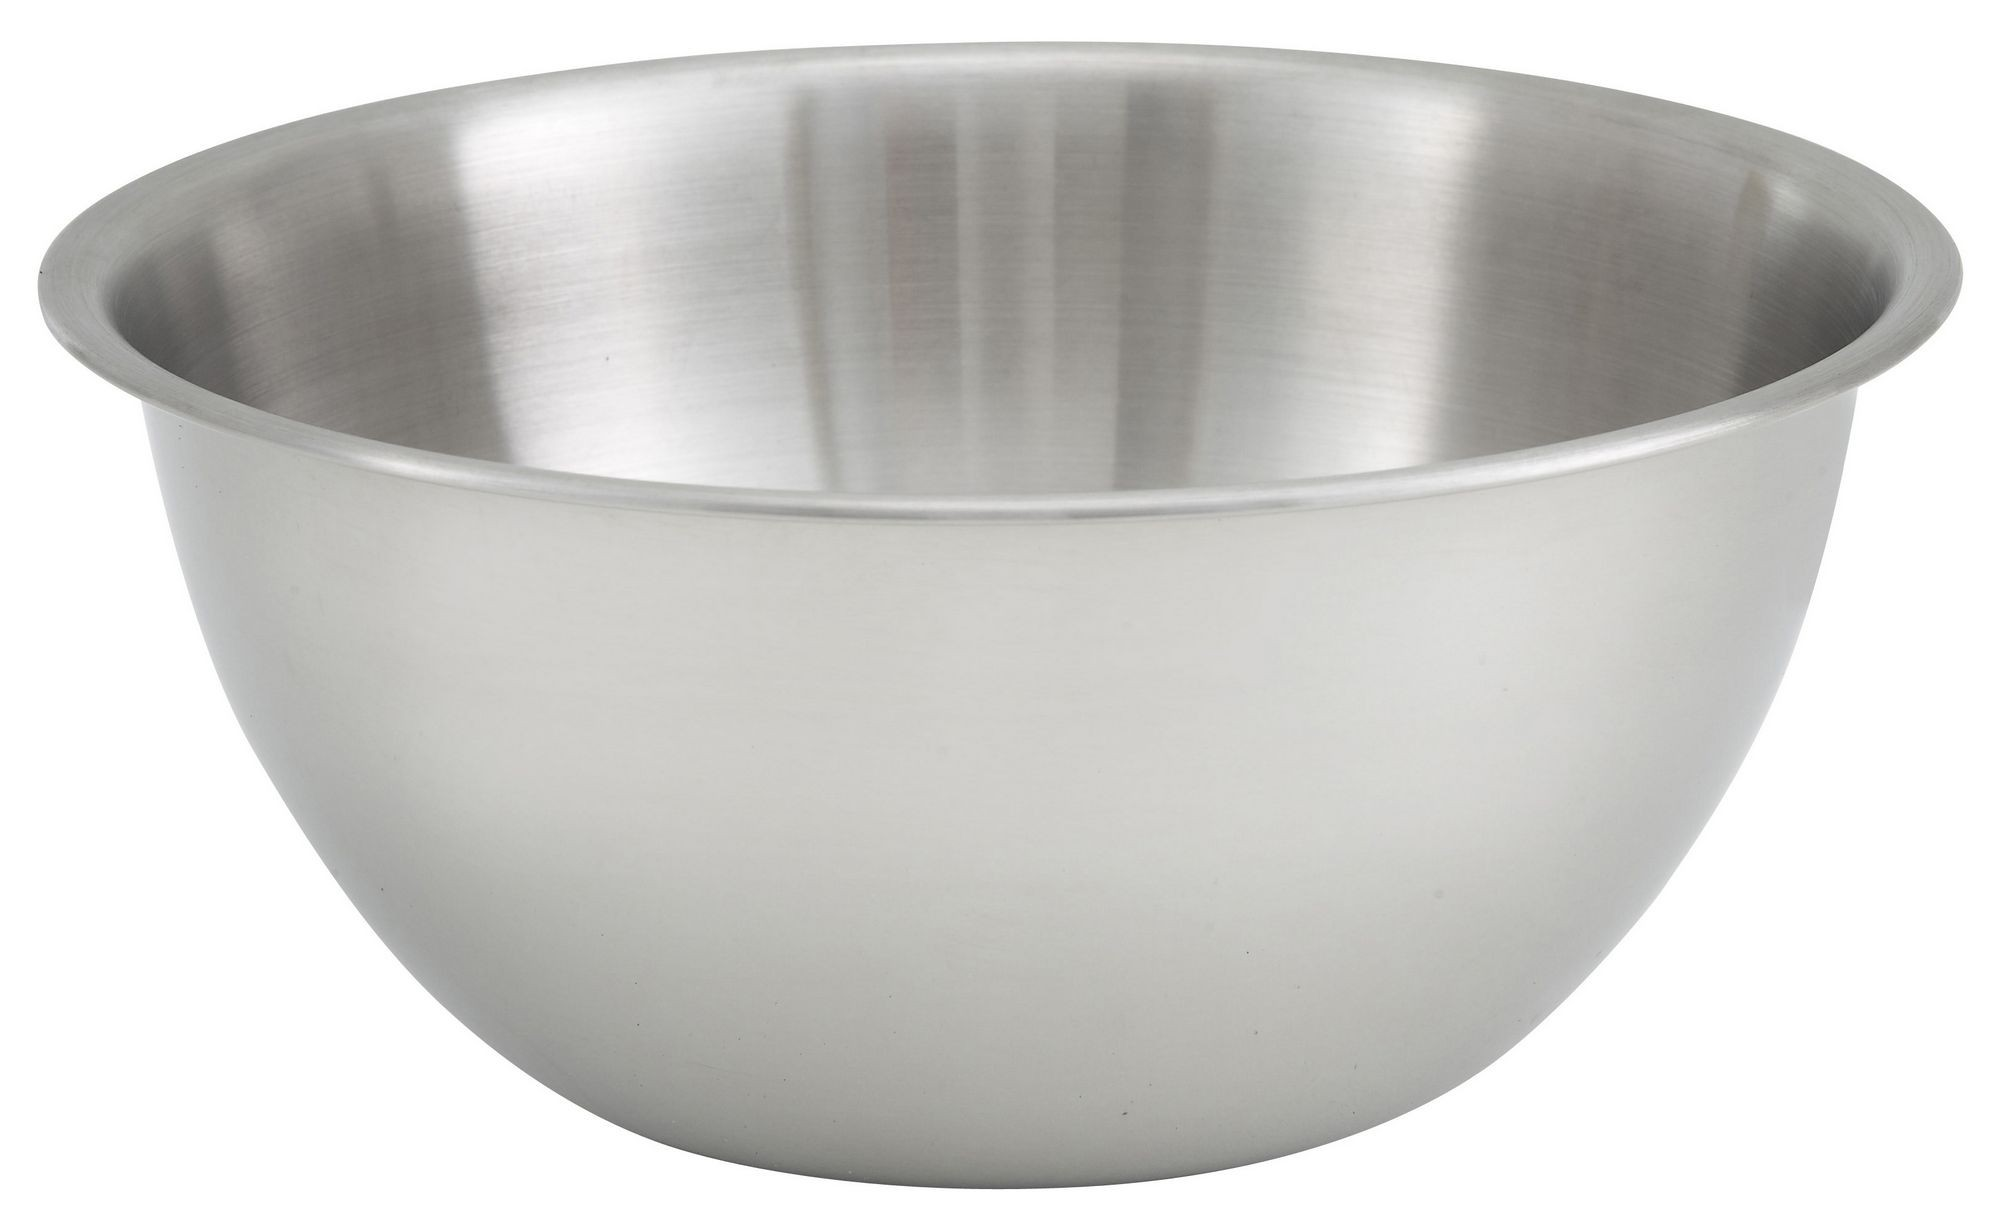 Winco MXBH-800 Heavy Duty Stainless Steel 8 Qt. Mixing Bowl